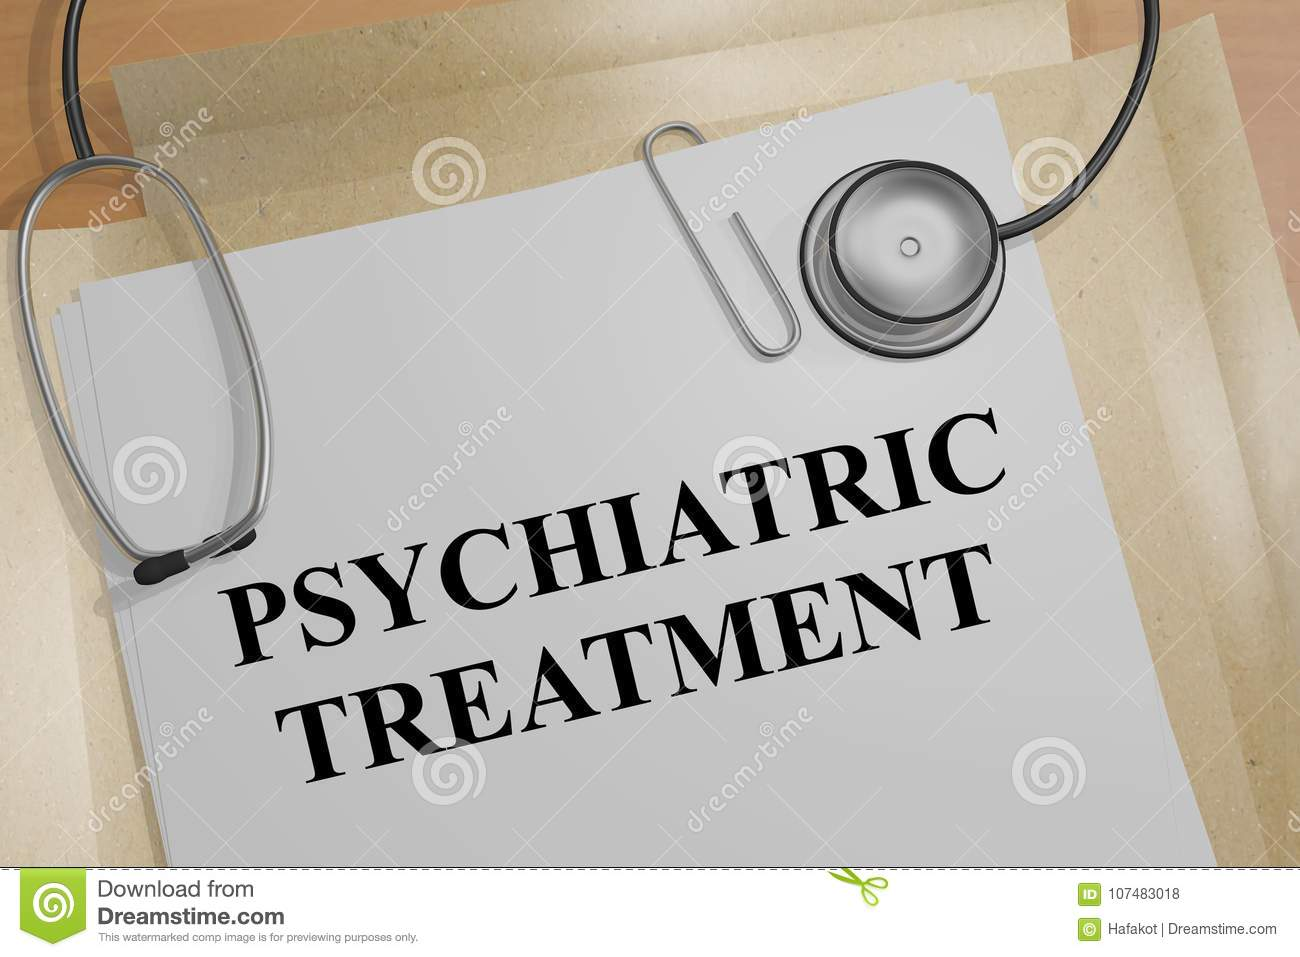 NEW LIFE HOSPITAL, REHABILITATION & DE ADDICTION CENTER, psychiatrist in pune, md psychiatrist, psychiatrist in pcmc, psychiatrist in maharashtra, best psychiatrist in pune, best psychiatrist in pcmc, dr sudhir sontakke md, best psychiatrist in maharashtra,